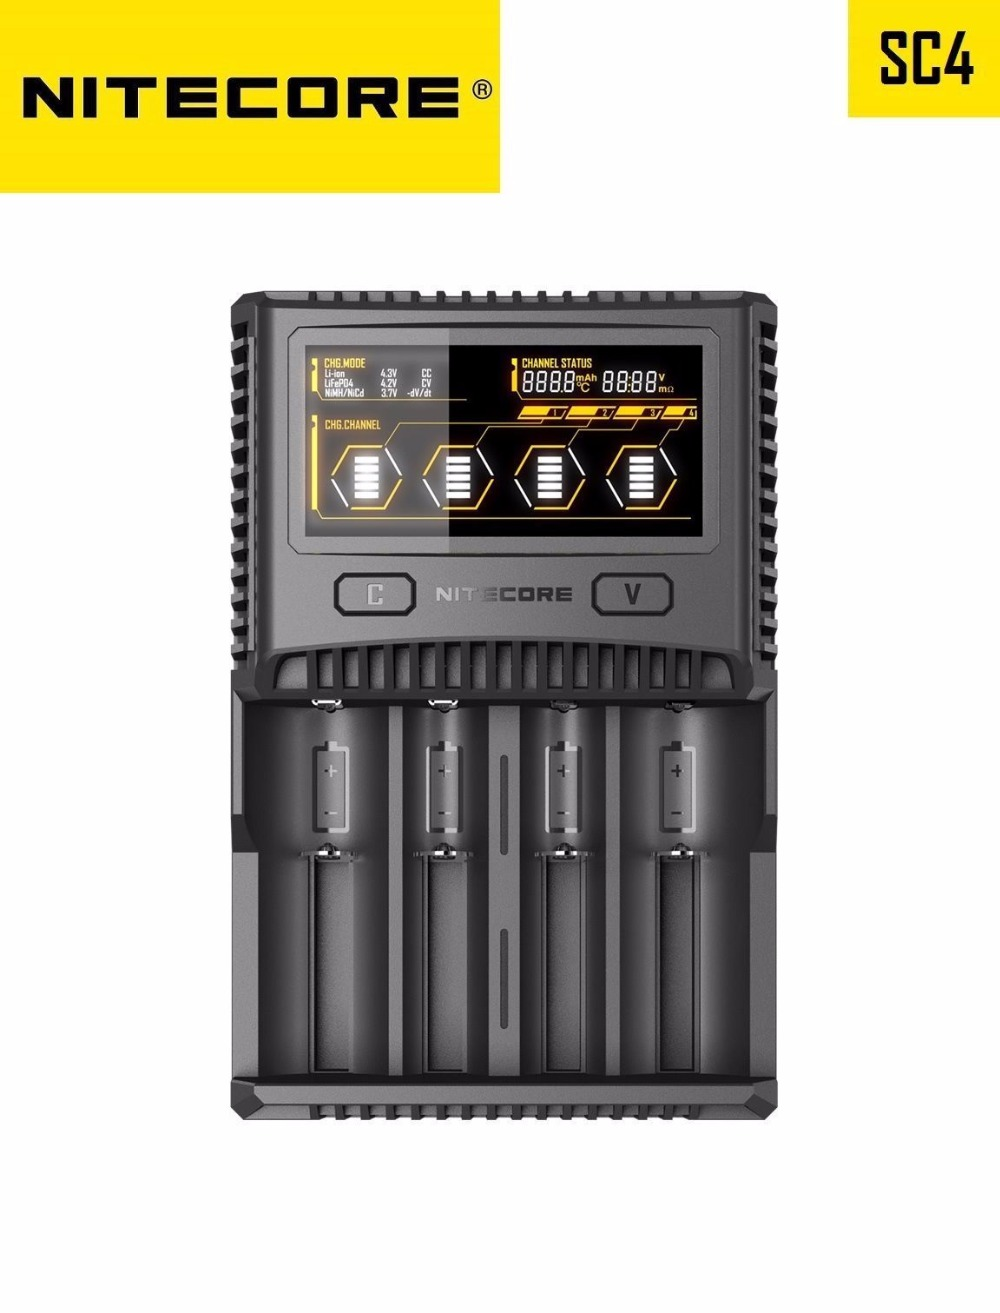 Nitecore SC4 LCD Display USB Rapid Intelligent Faster Charging Superb Charger For Li-ion/IMR/LiFePO4/Ni-MH Battery Charger